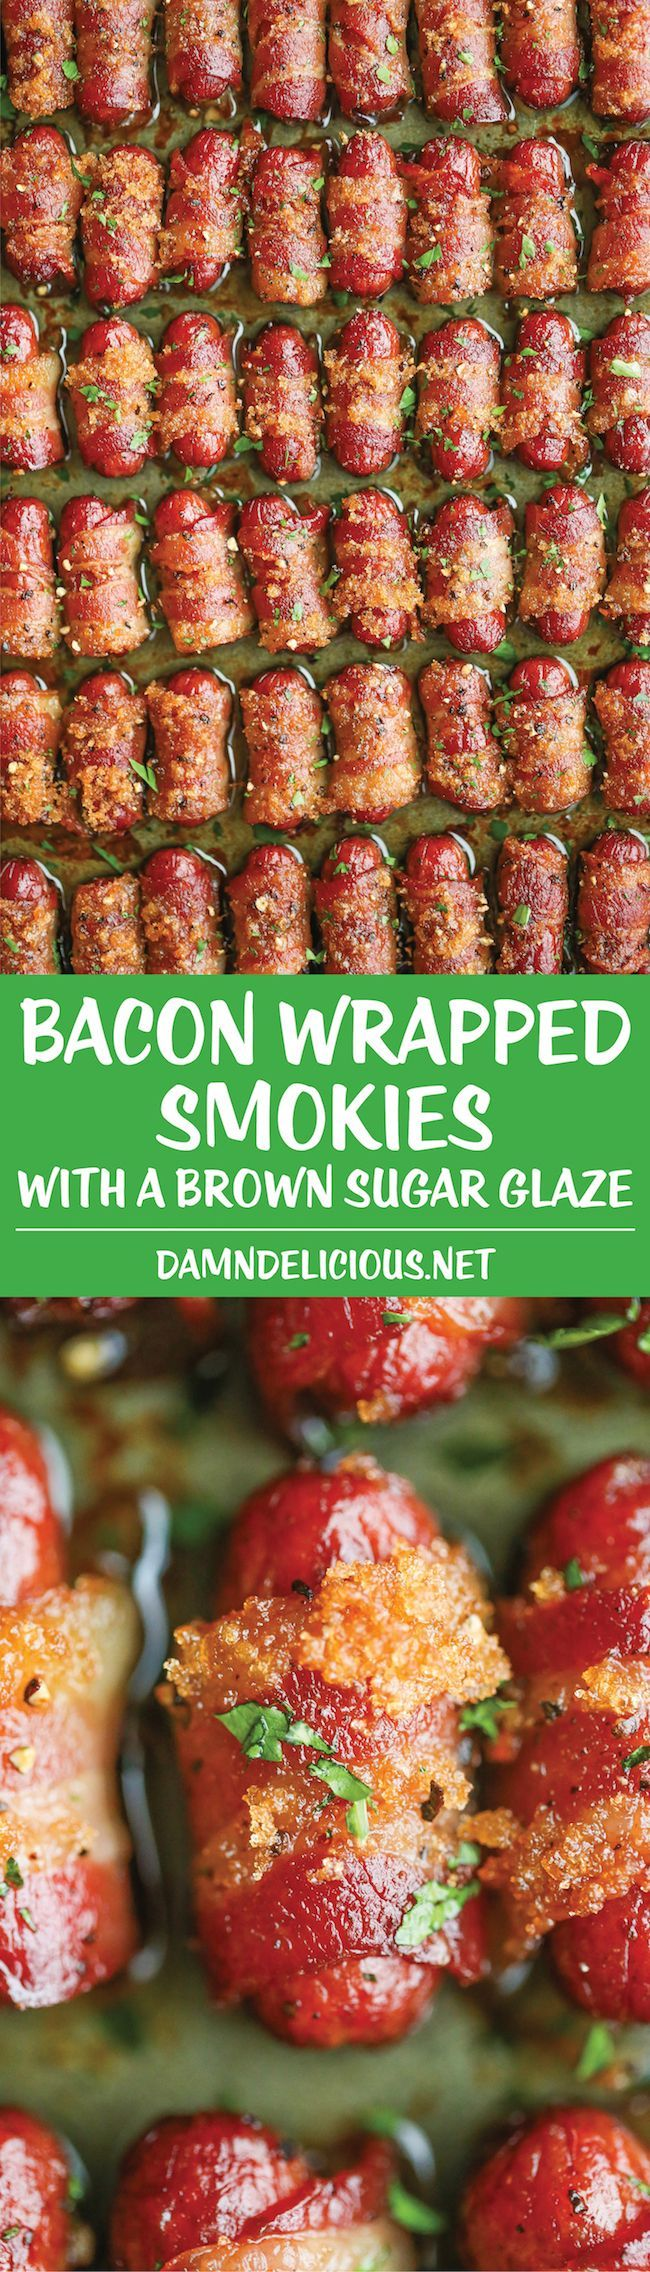 Bacon Wrapped Smokies - The must-have appetizer for holiday parties, game day or for any night of the week. It's just so easy and sure to be a HUGE hit!